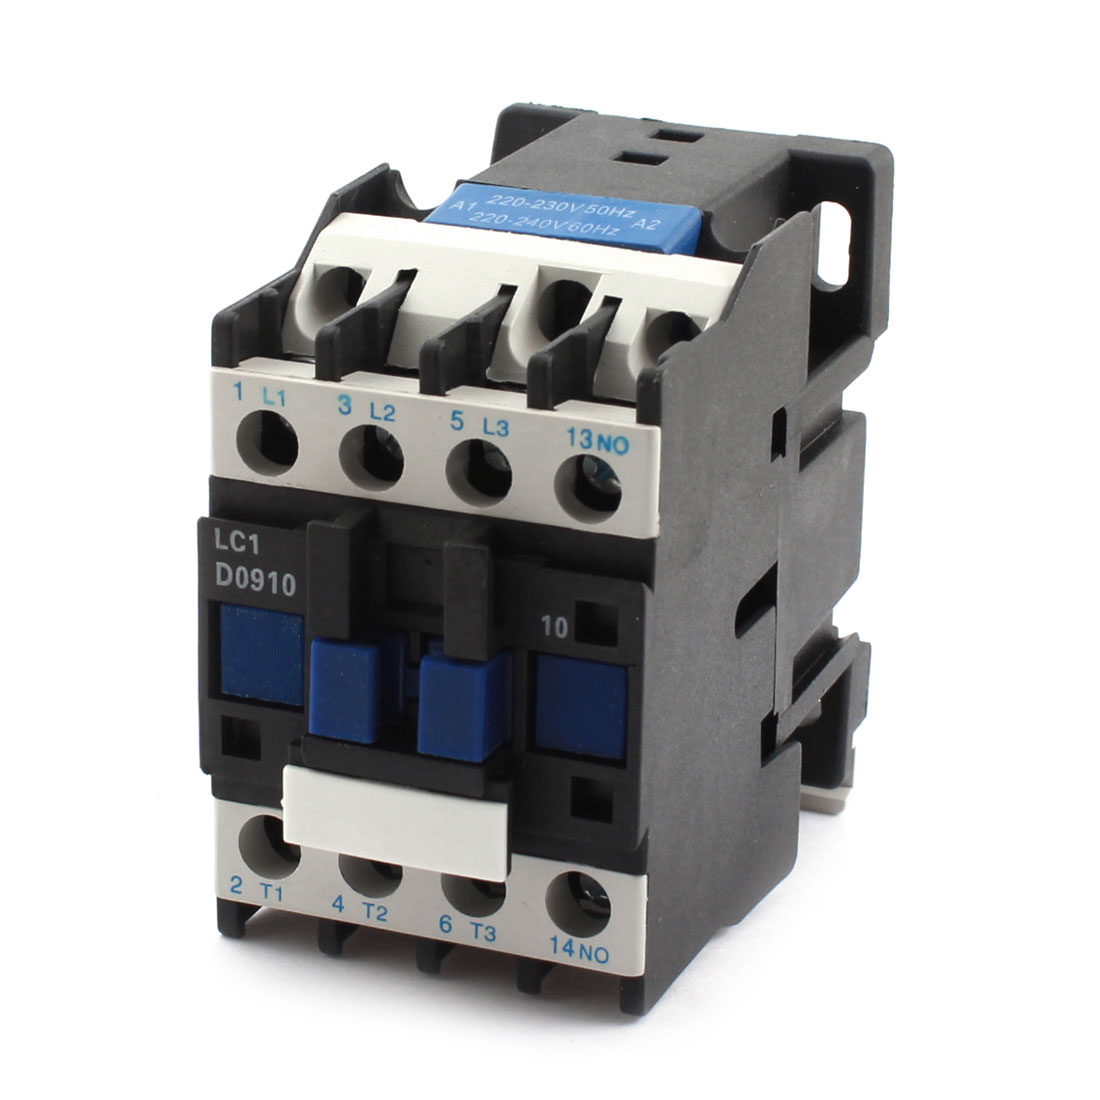 LC1 D0910 35mm DIN Rail Mounting 3-Phase Electric Power AC Contactor 220V